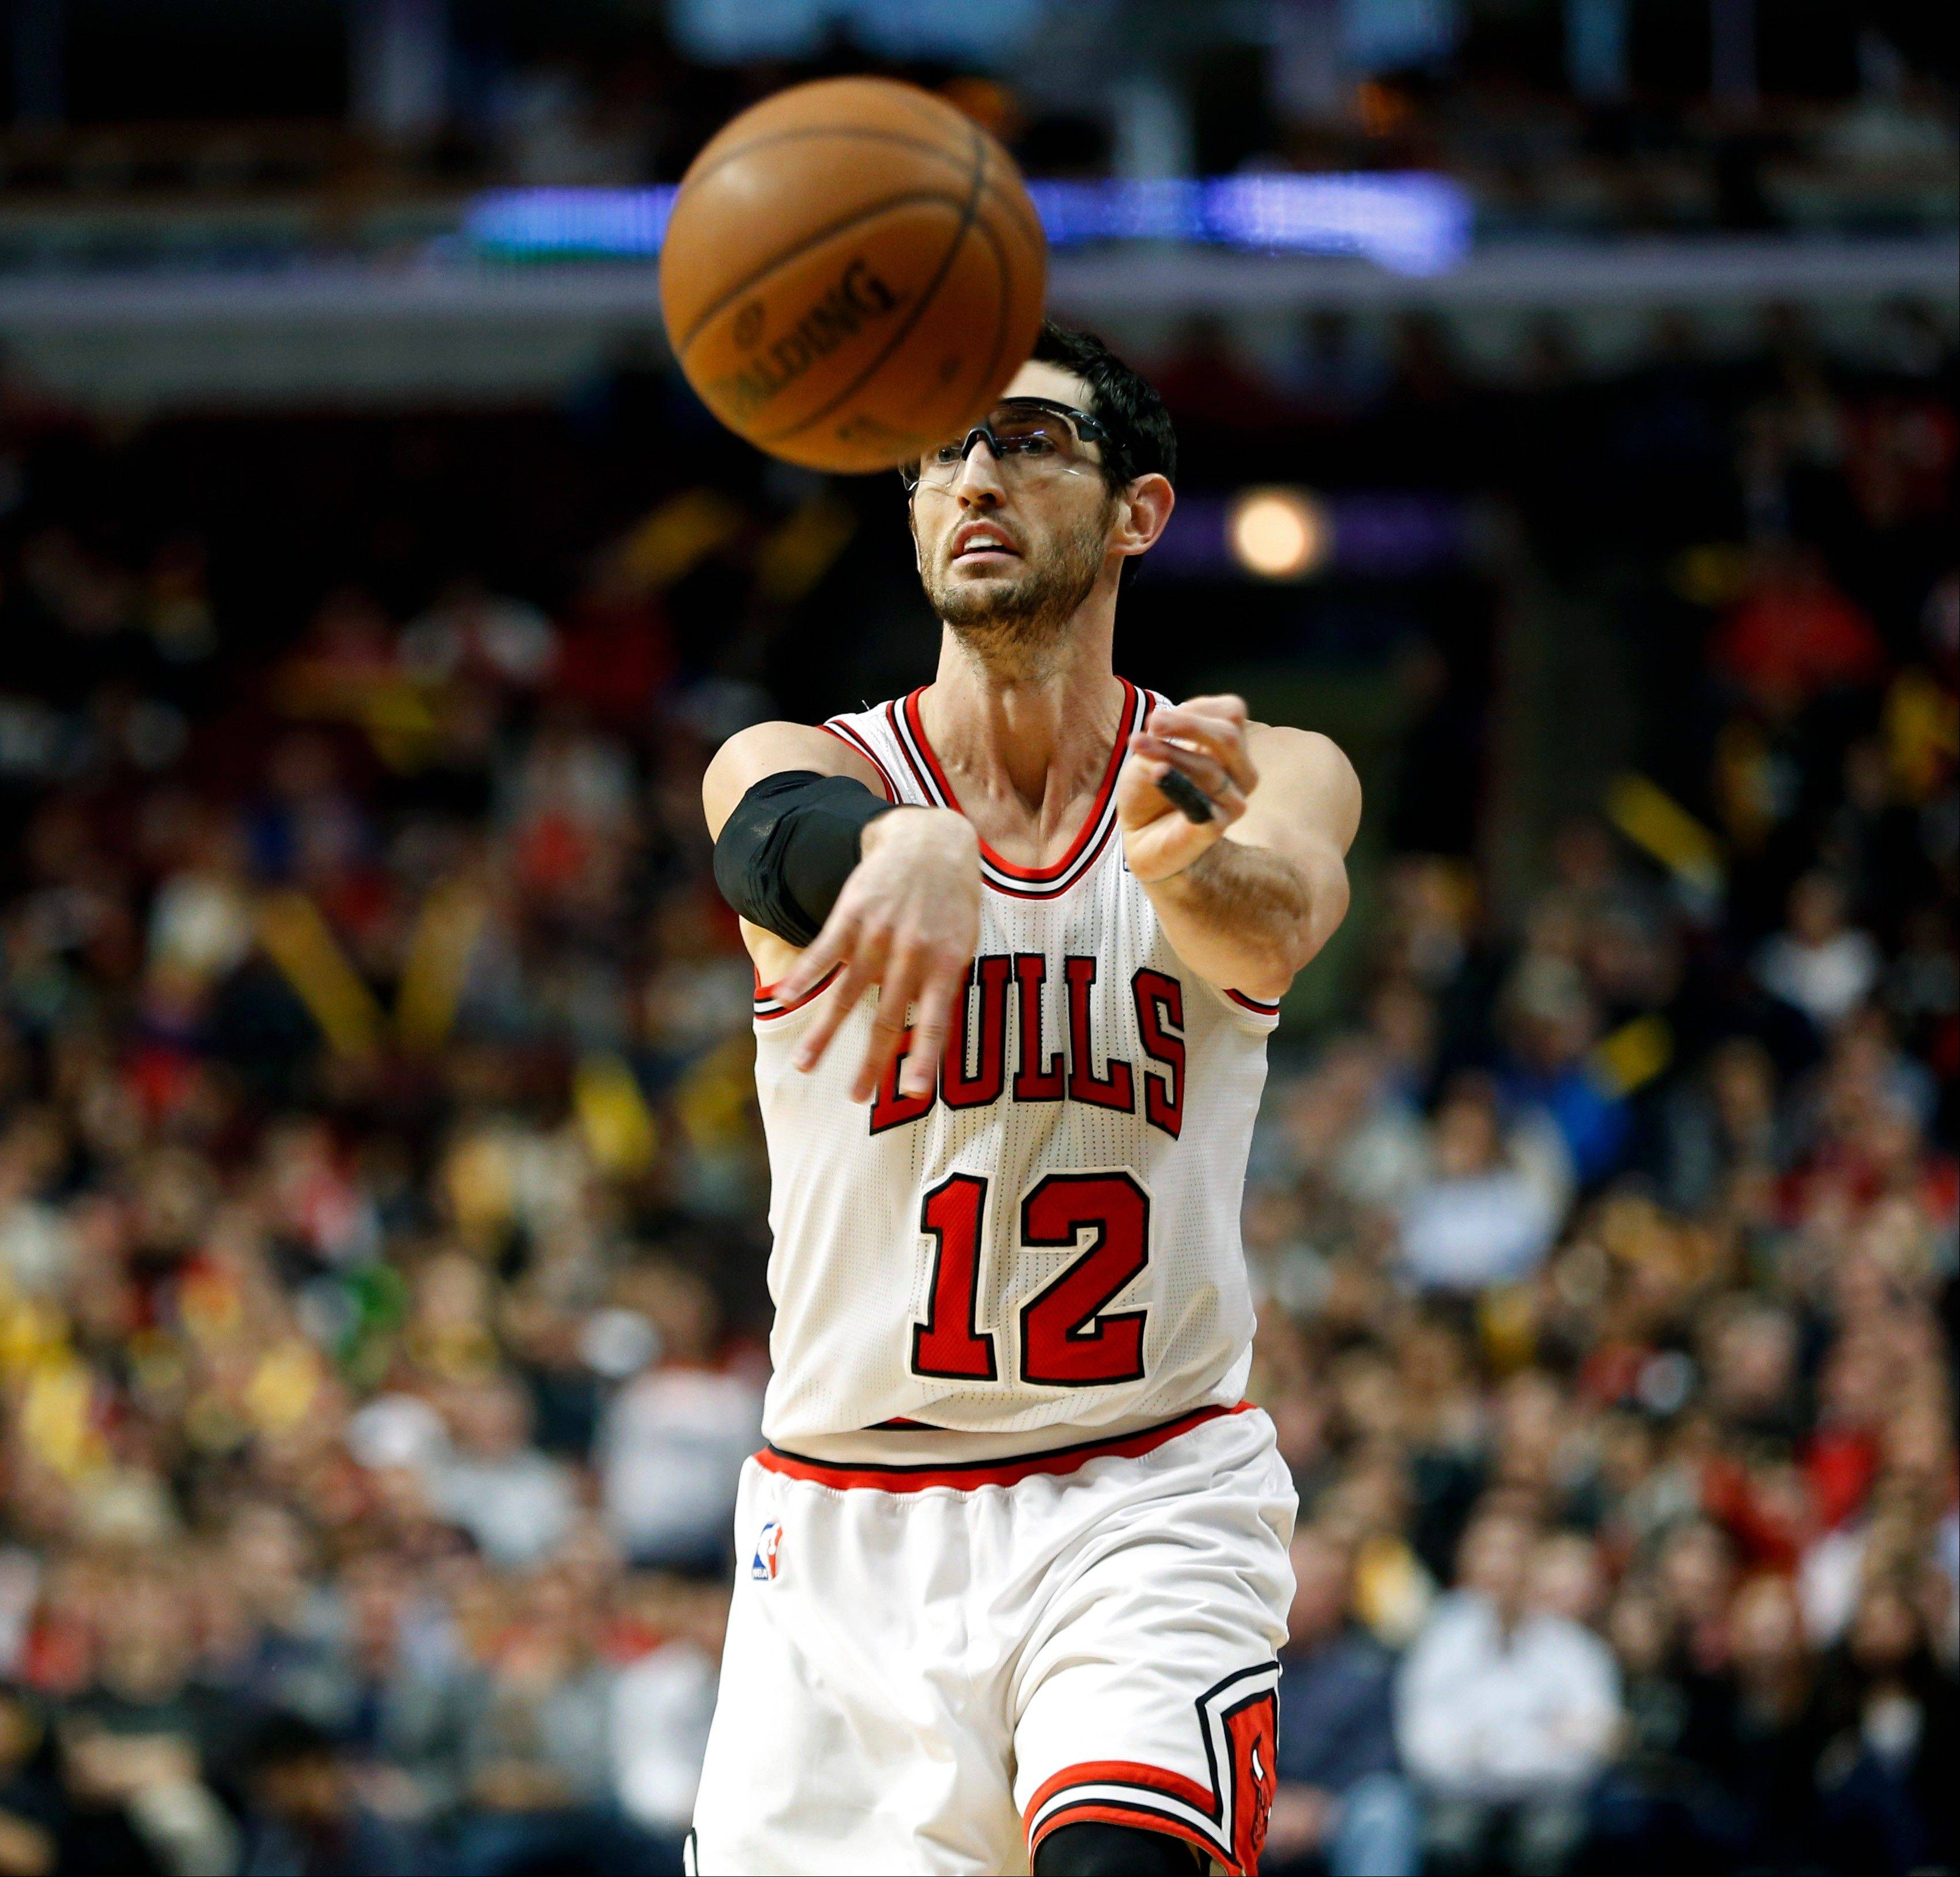 Bulls guard Kirk Hinrich has stayed healthy this season, which has been vital with limited options to replace him.